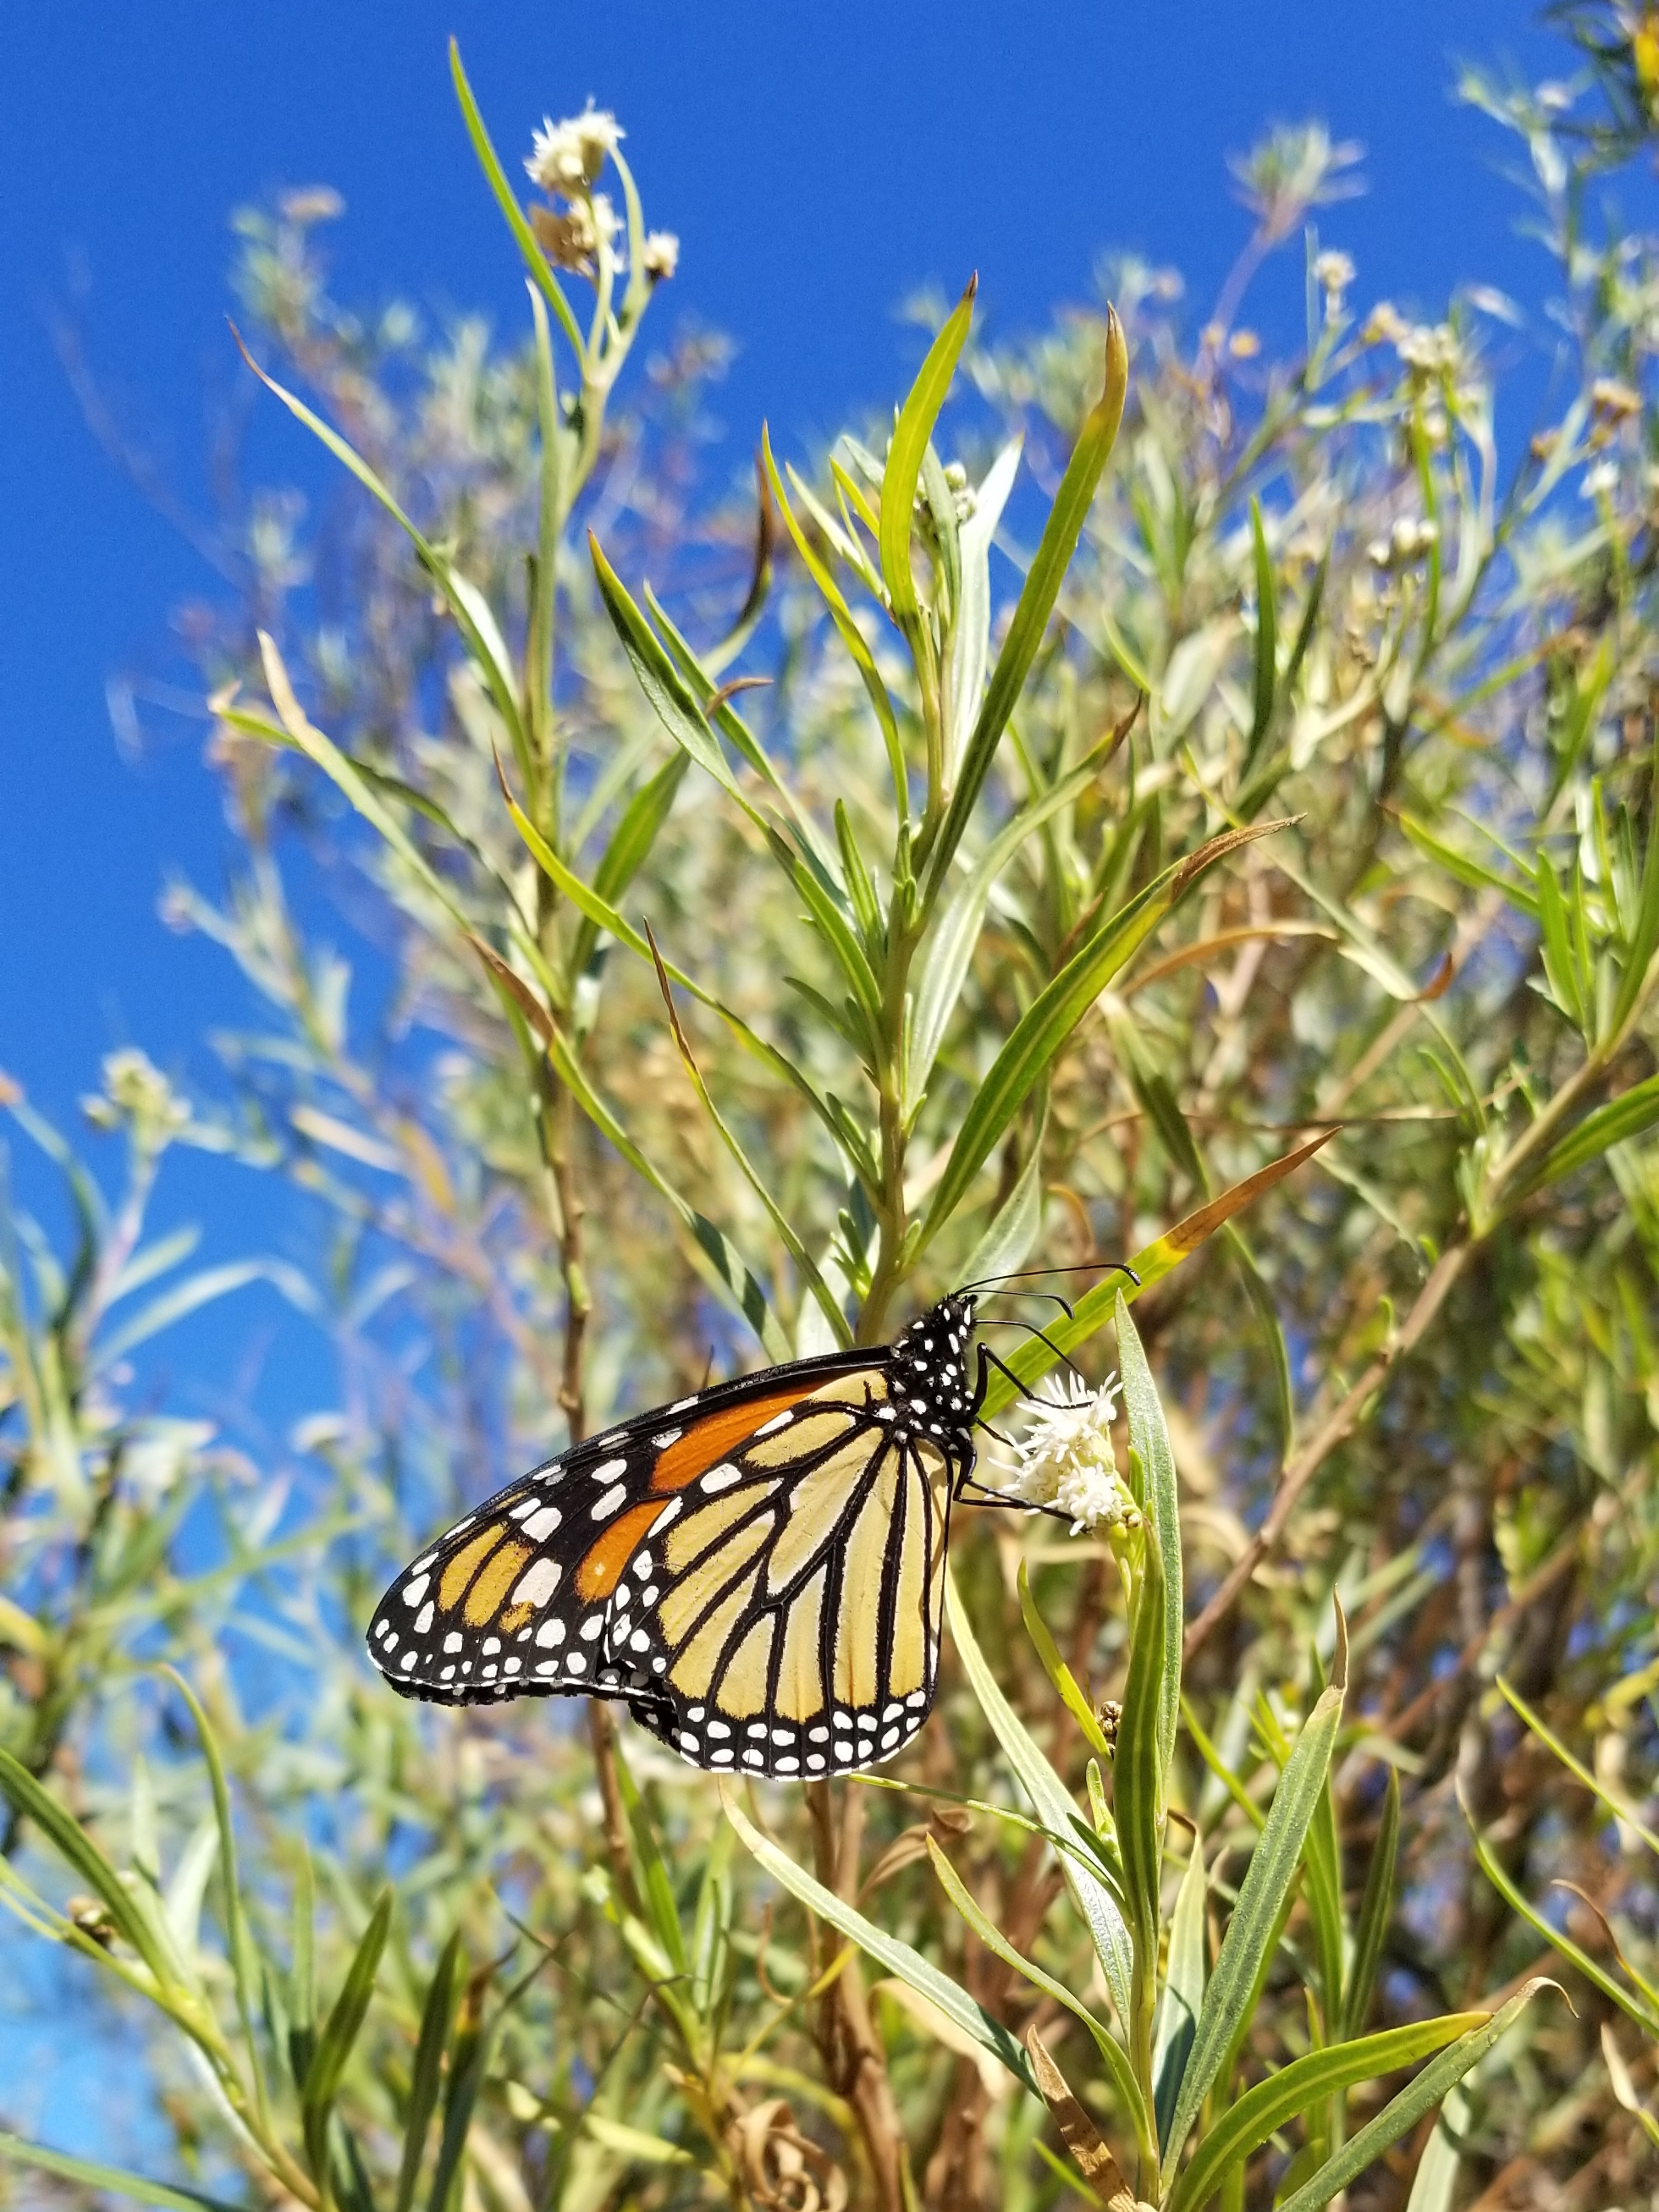 An orange and black monarch butterfly drinks nectar from the creamy-white flowers of mule fat